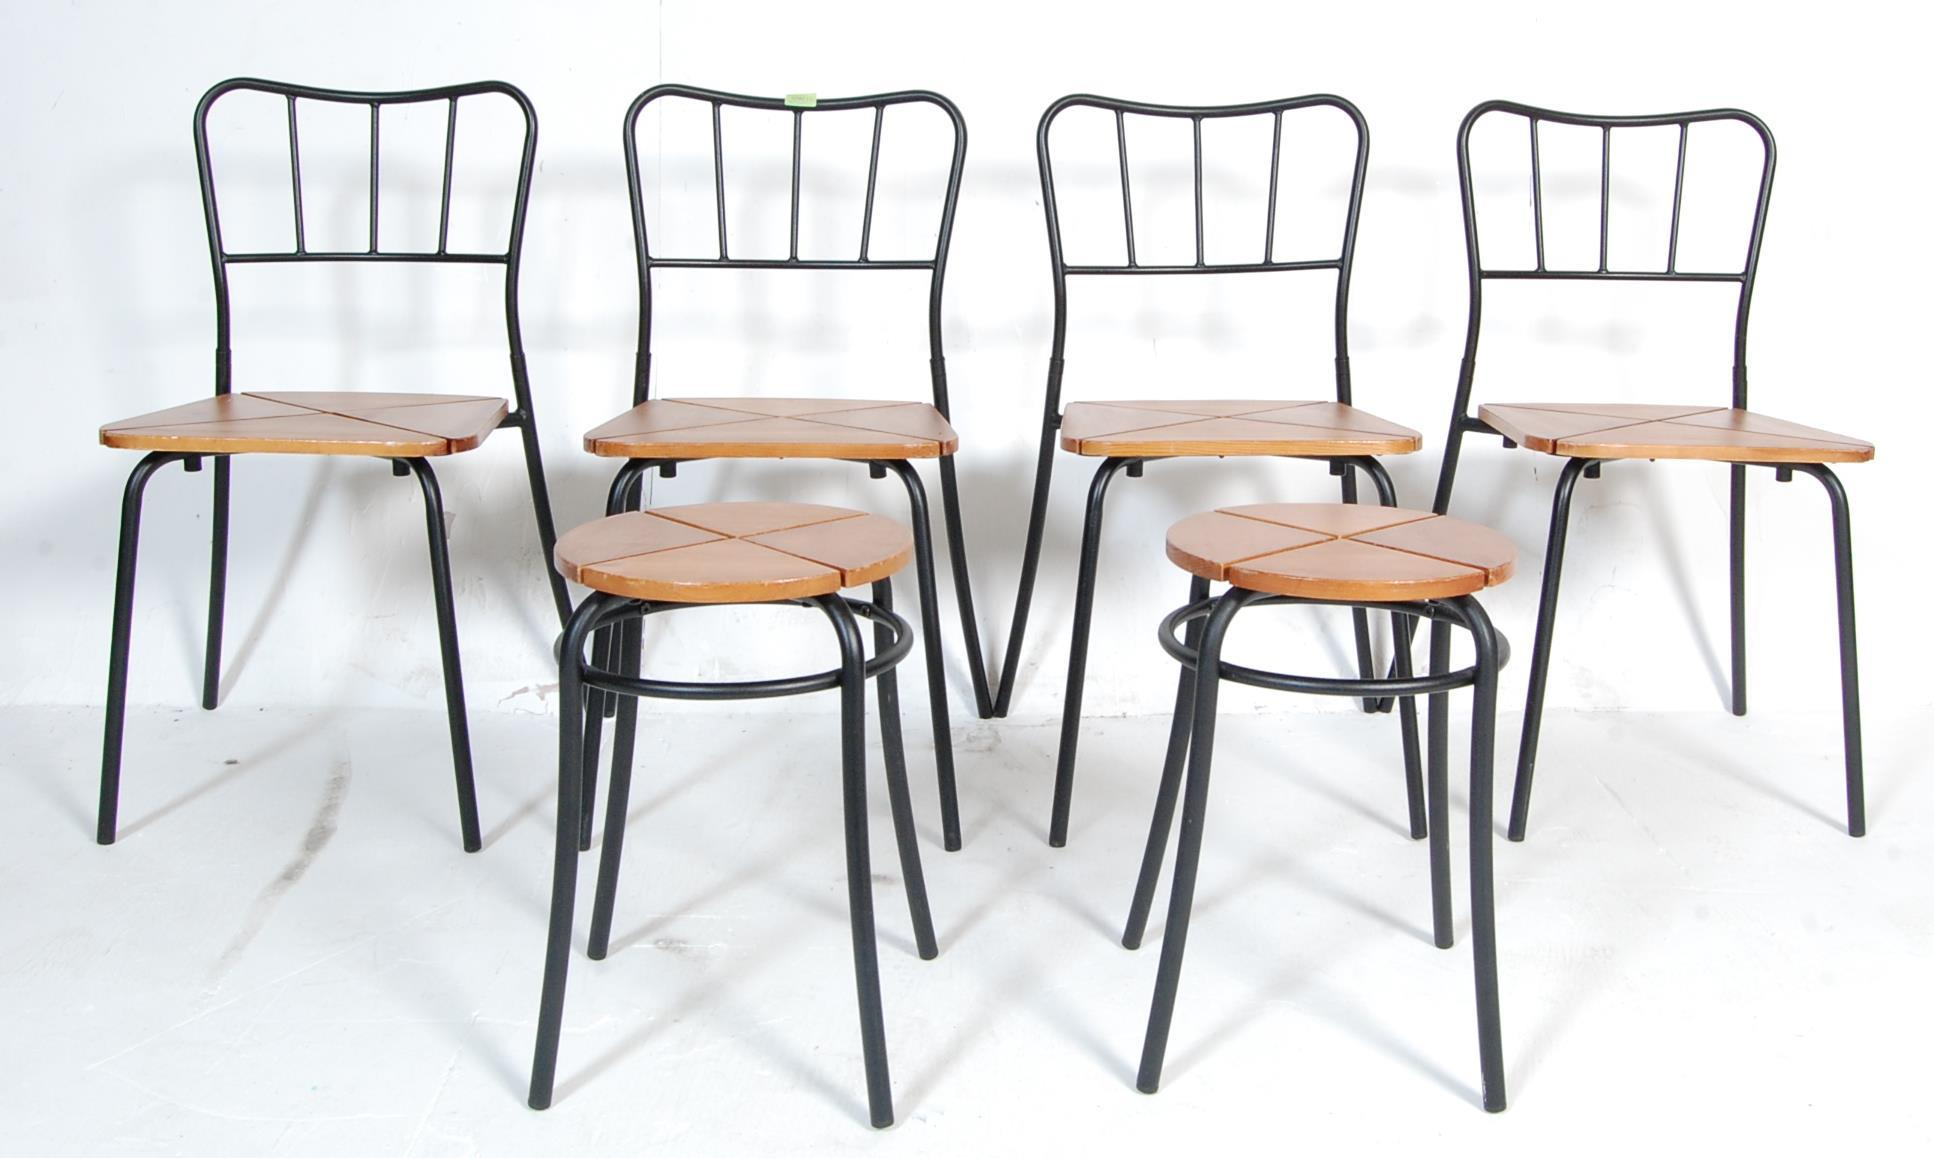 SET OF FOUR CONTEMPORARY INDUSTRIAL DINING CHAIRS